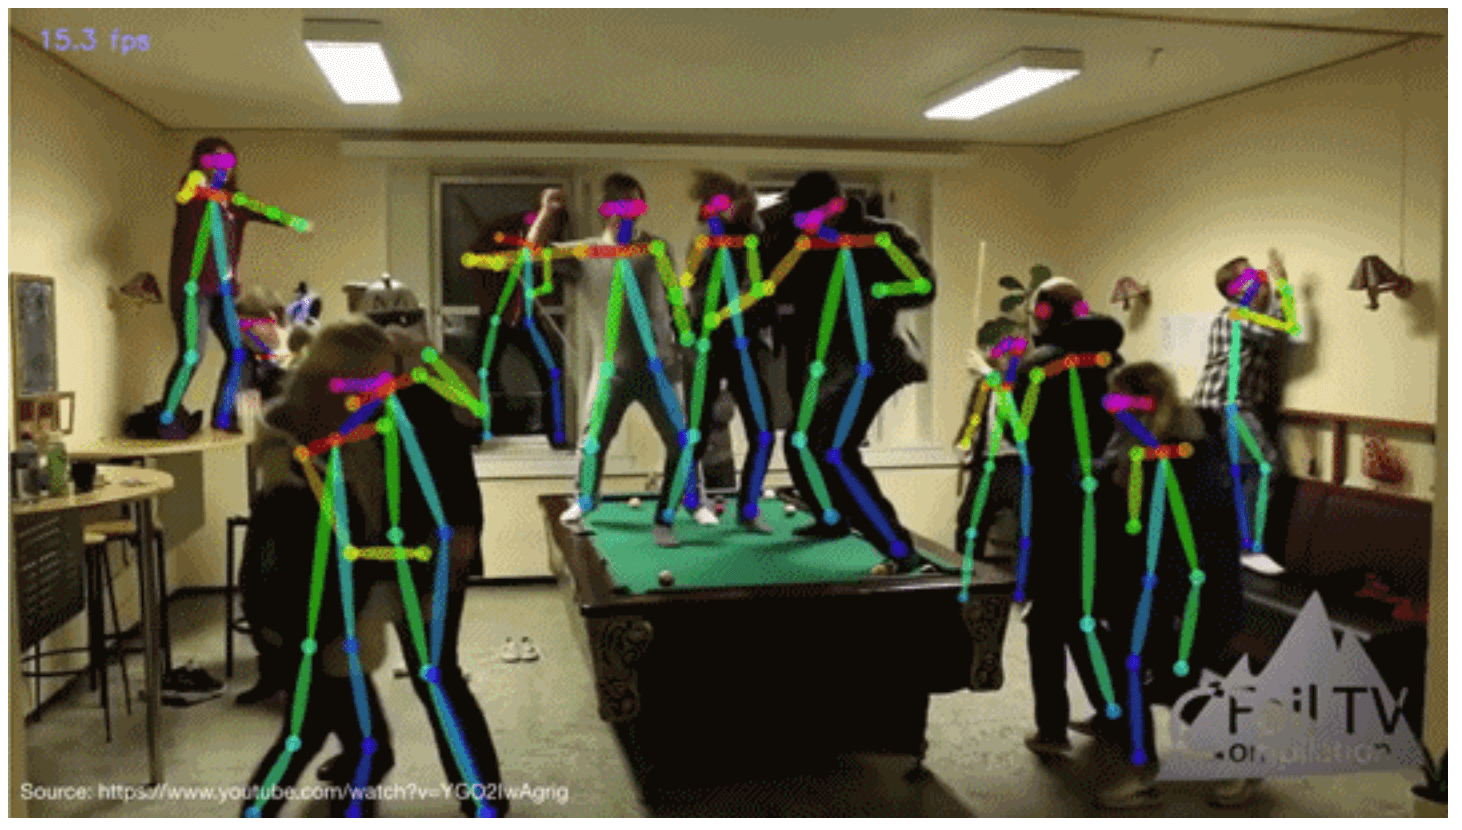 Deep Learning Models and Code for Pose Estimation - Model Zoo